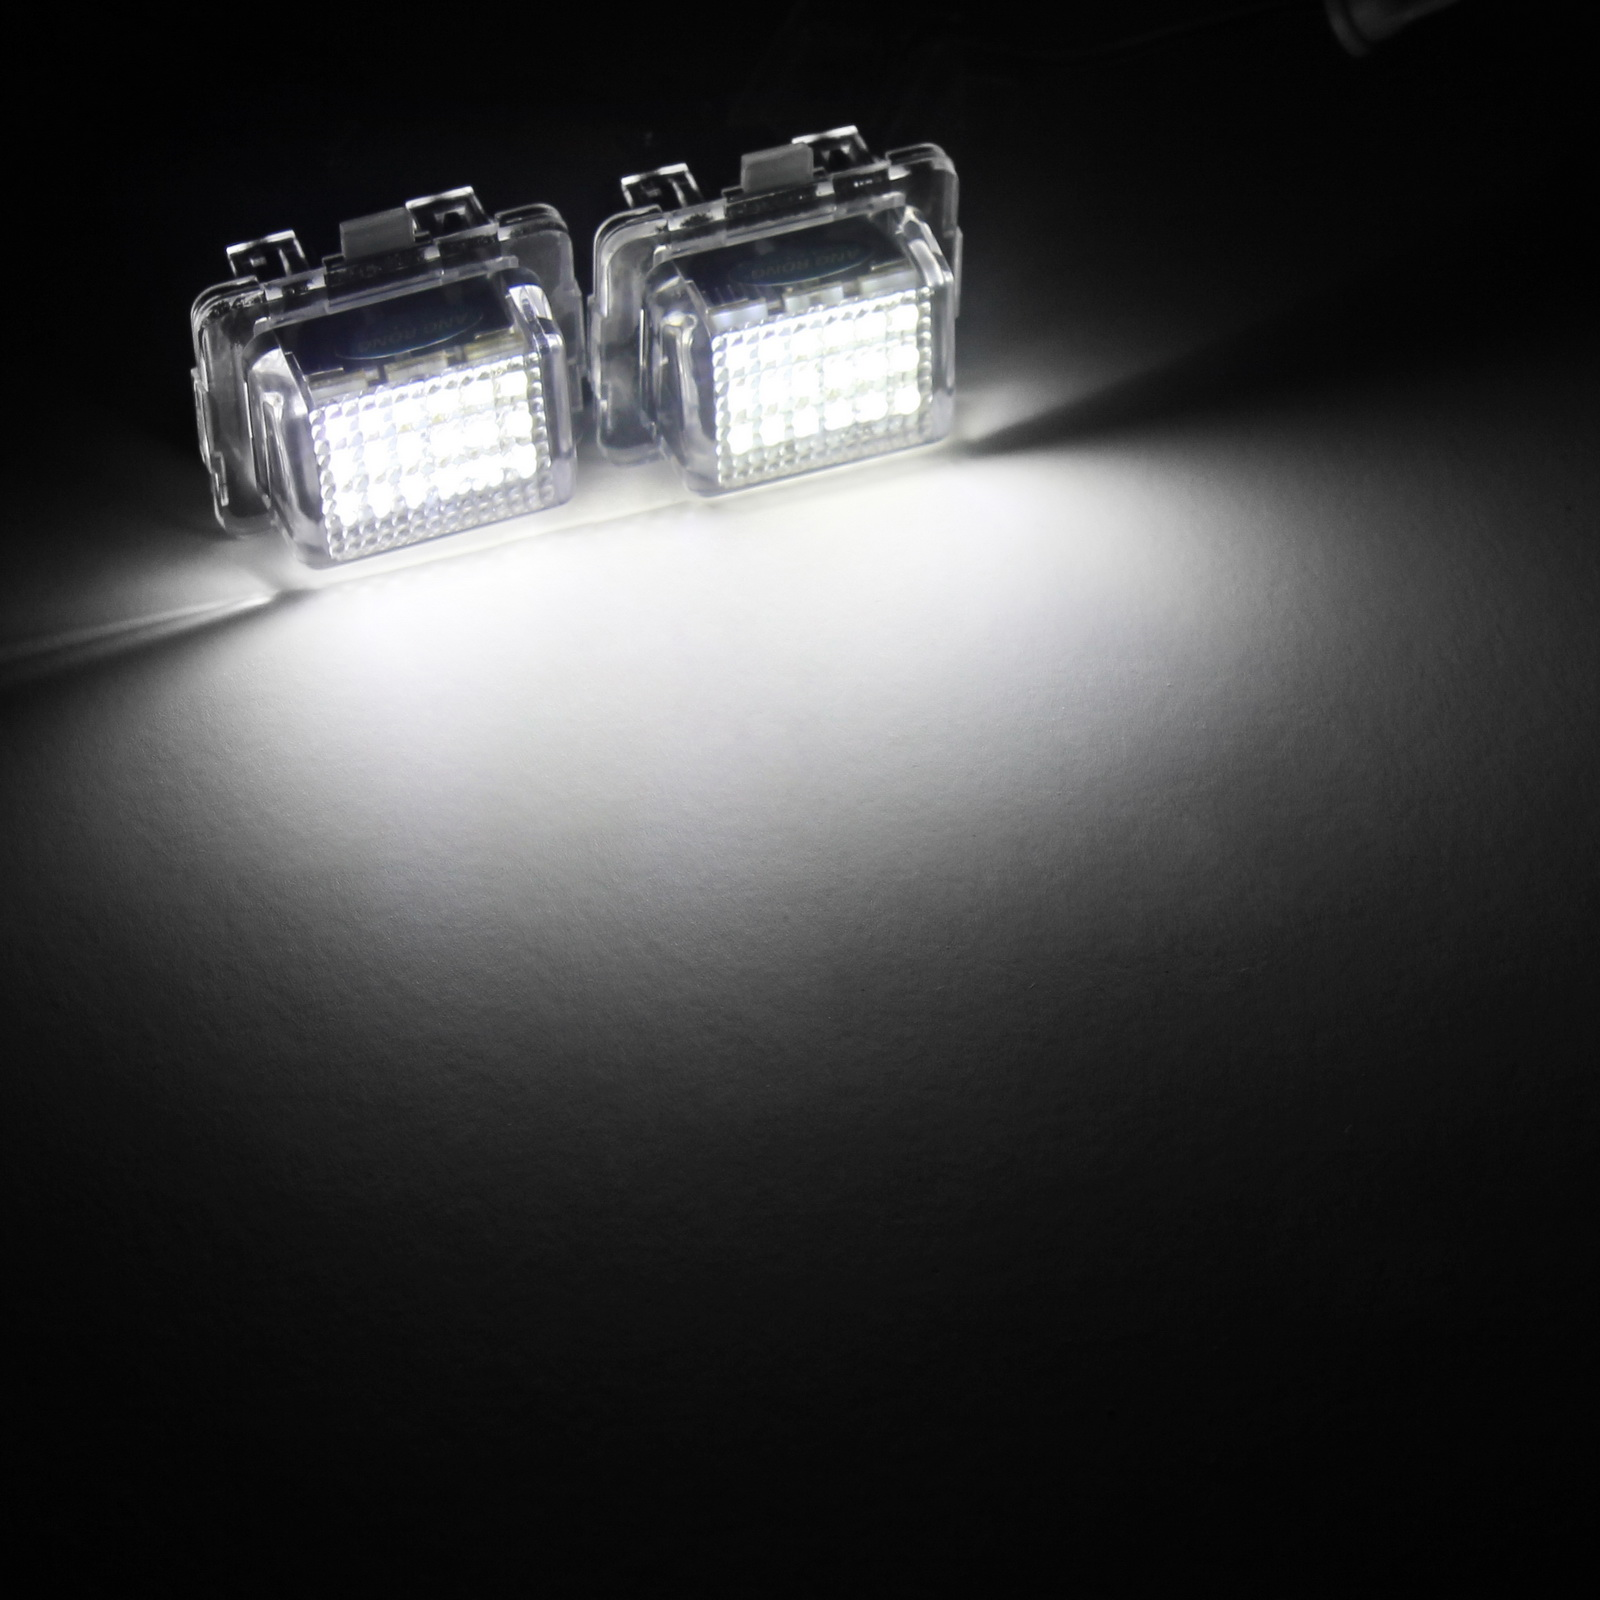 2x LED Licence Number Plate Light White Canbus For MB W204 W212 C207 W221 W222 R231 C117 C E S SL CLA Class